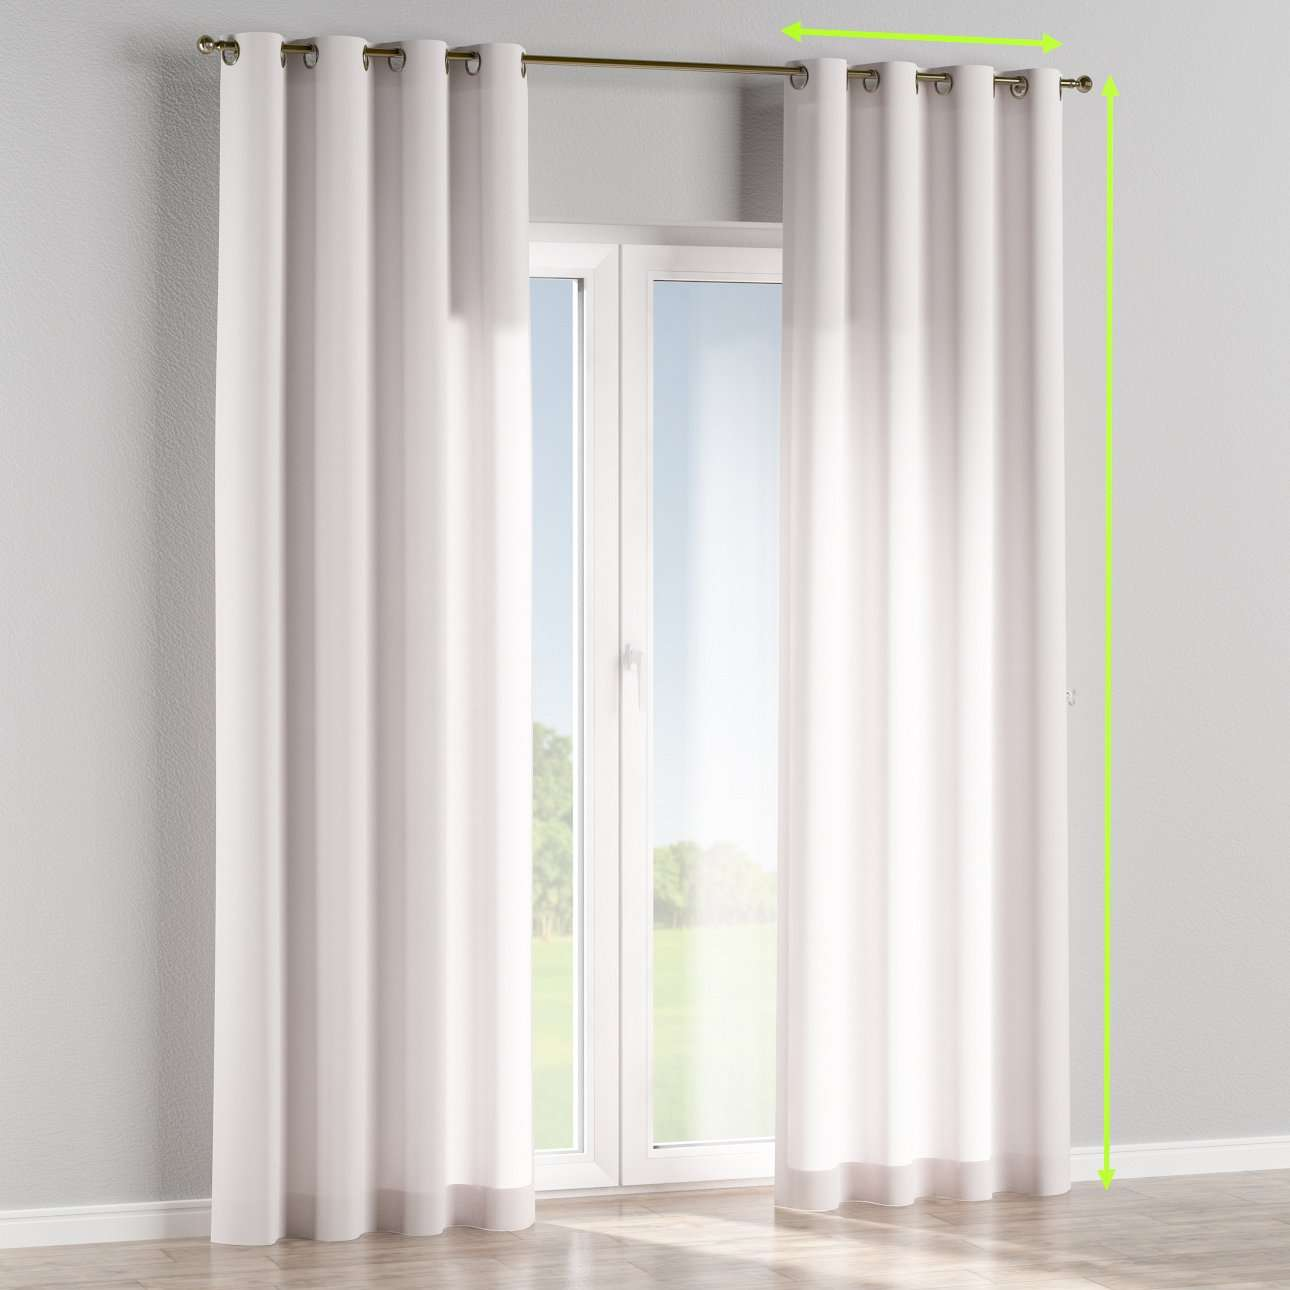 Eyelet curtains in collection Panama Cotton, fabric: 702-00